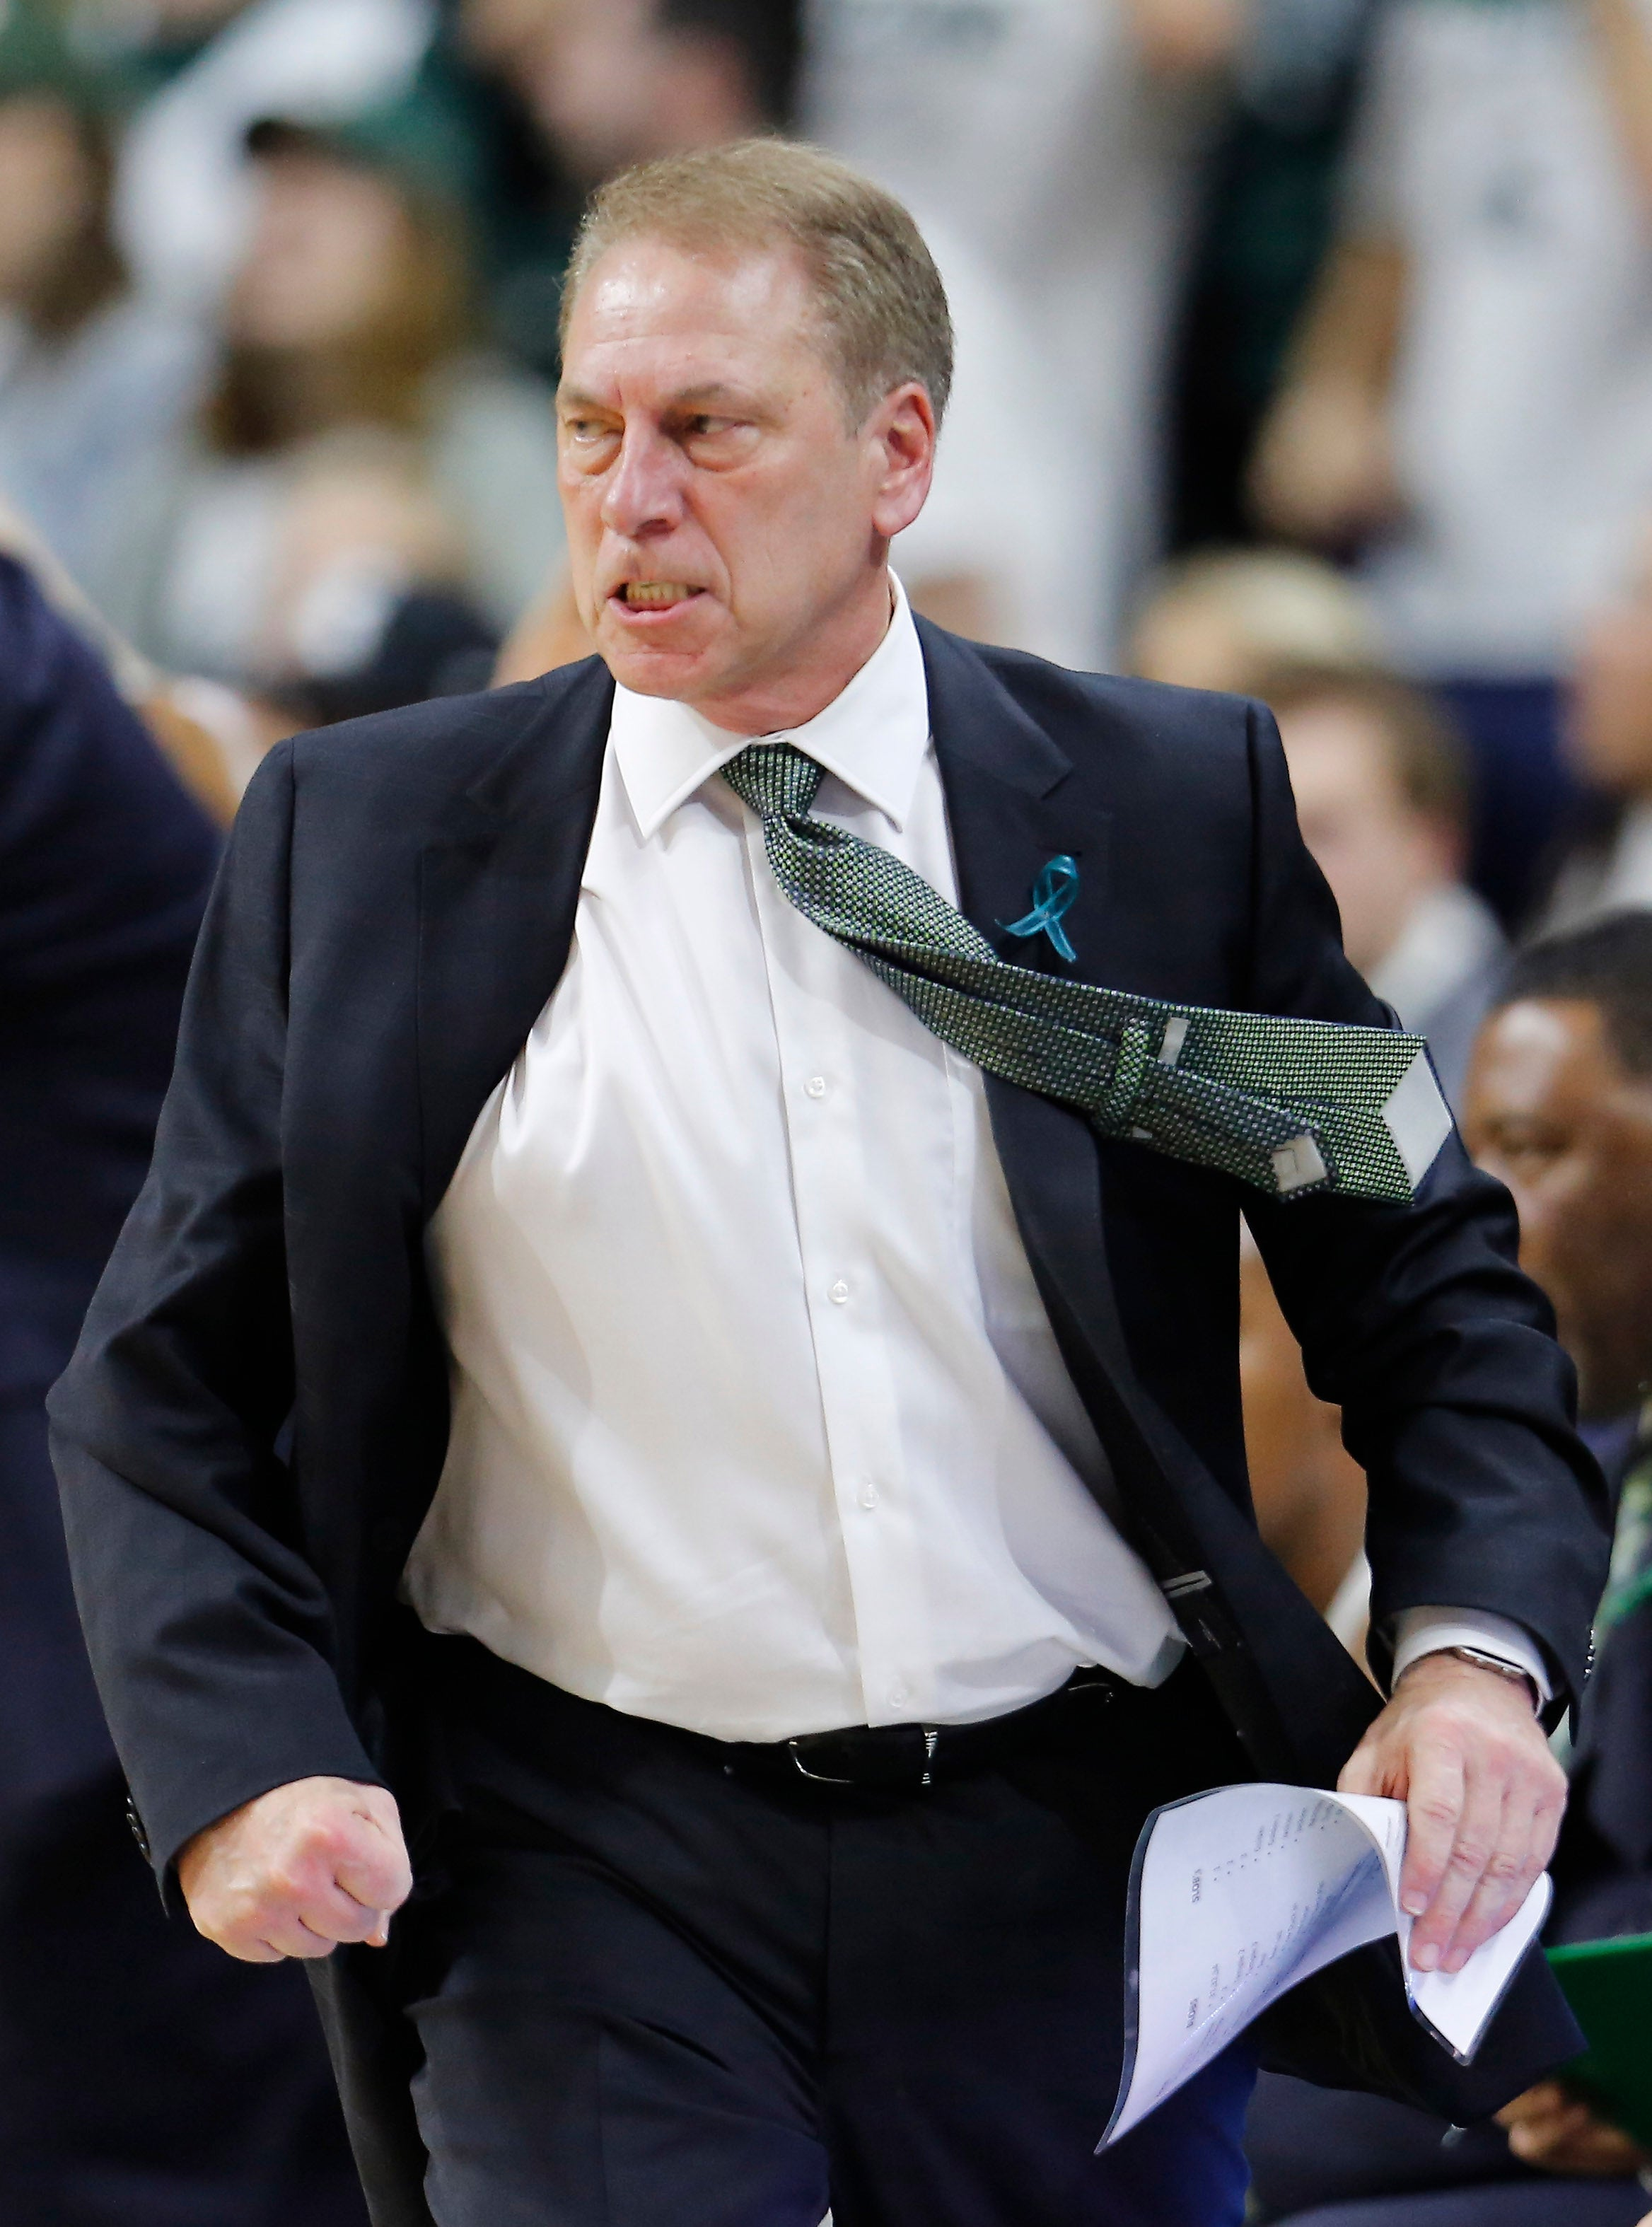 Michigan State University basketball head coach Tom Izzo on Feb. 20 in East Lansing, Michigan.